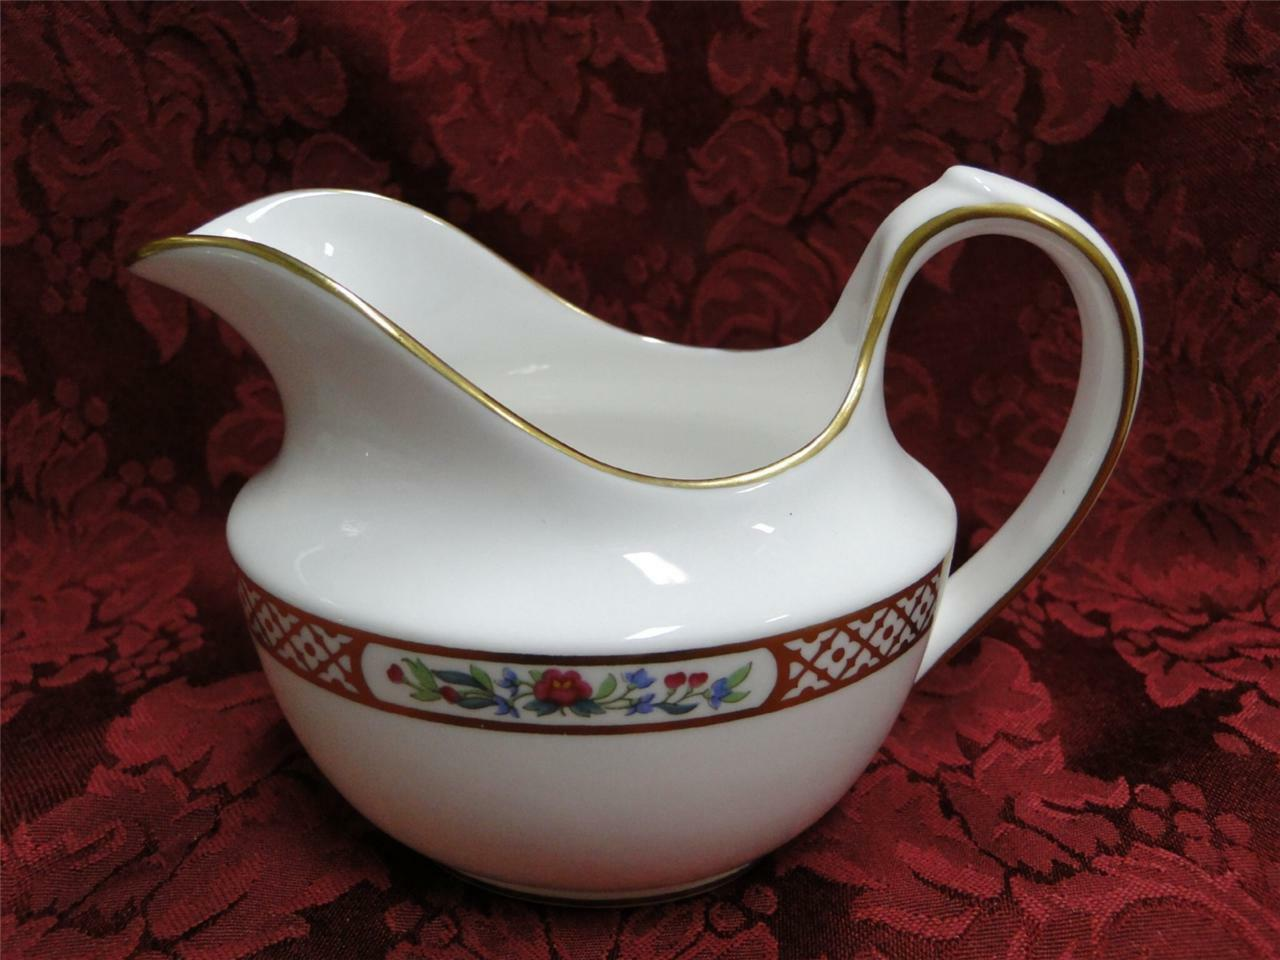 Spode Golden Trellis Y8405, Flowers, Gold Lattice: Creamer / Cream Pitcher